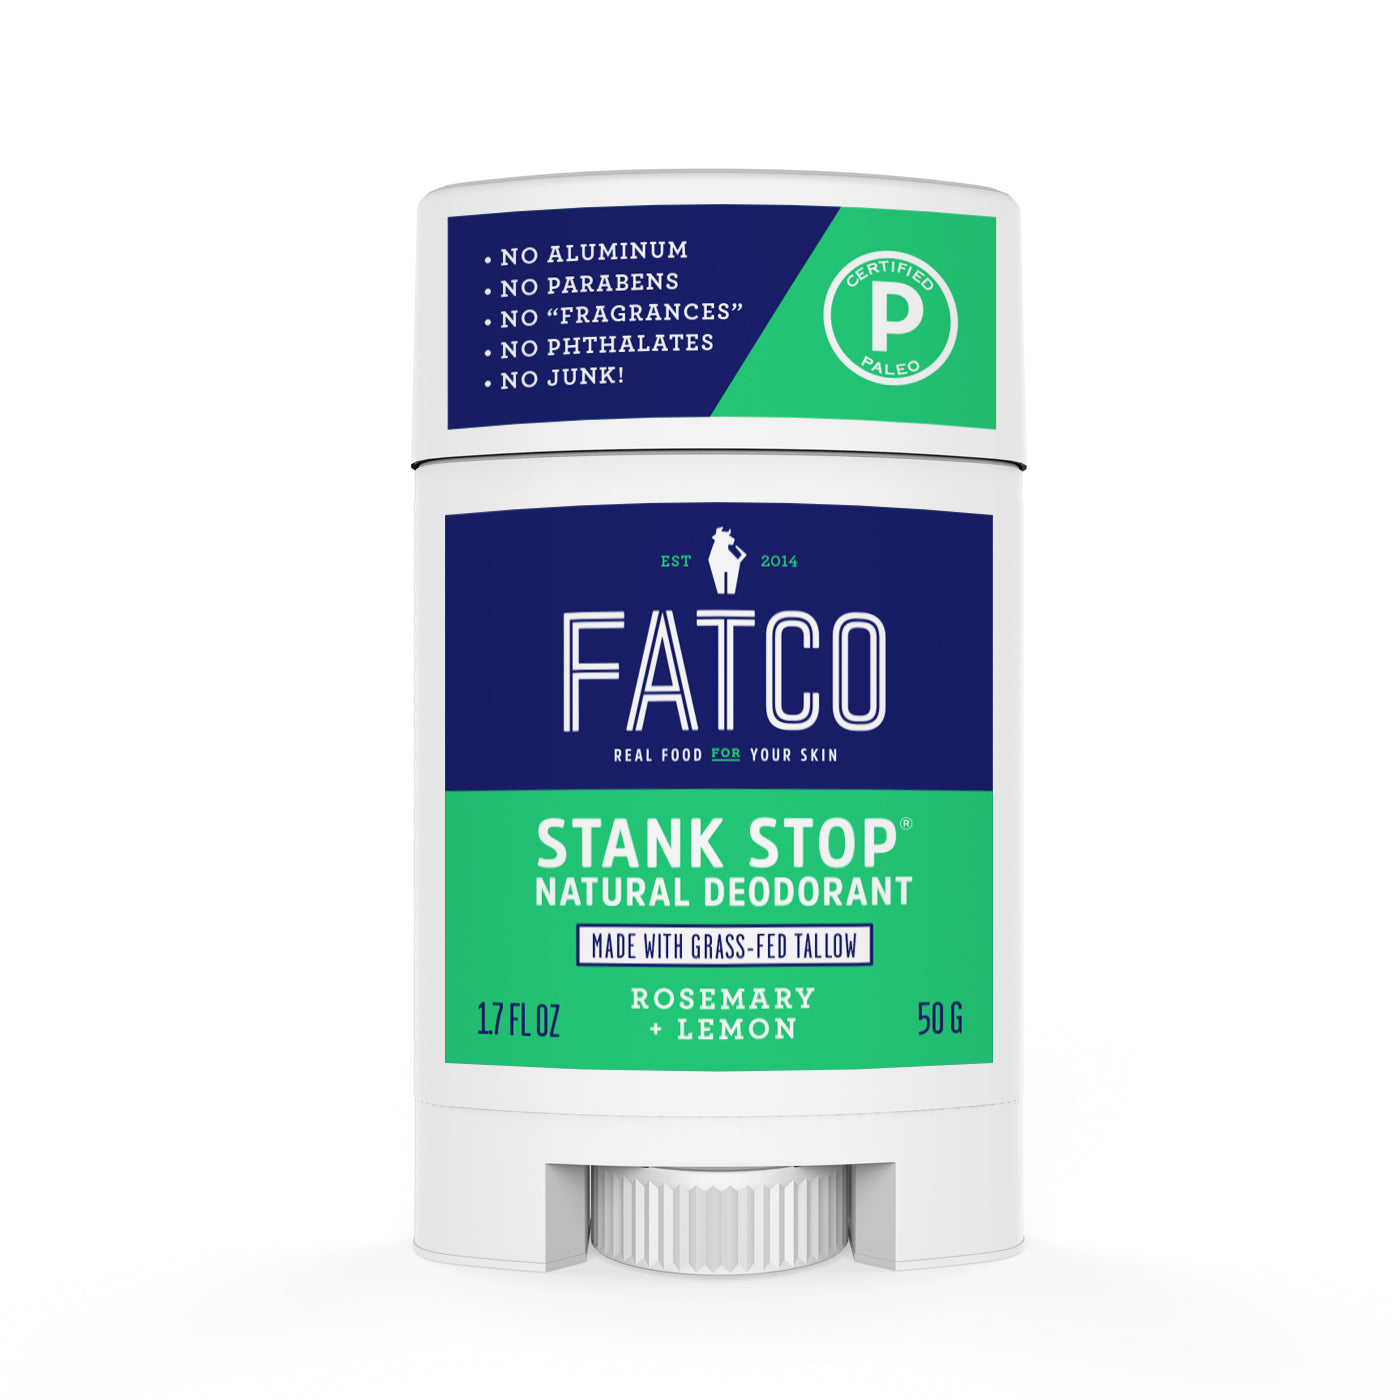 STANK STOP DEODORANT STICK, ROSEMARY+LEMON, 1.7 OZ-FATCO1-FATCO Skincare Products grass fed tallow paleo skincare natural deodorant aluminum free